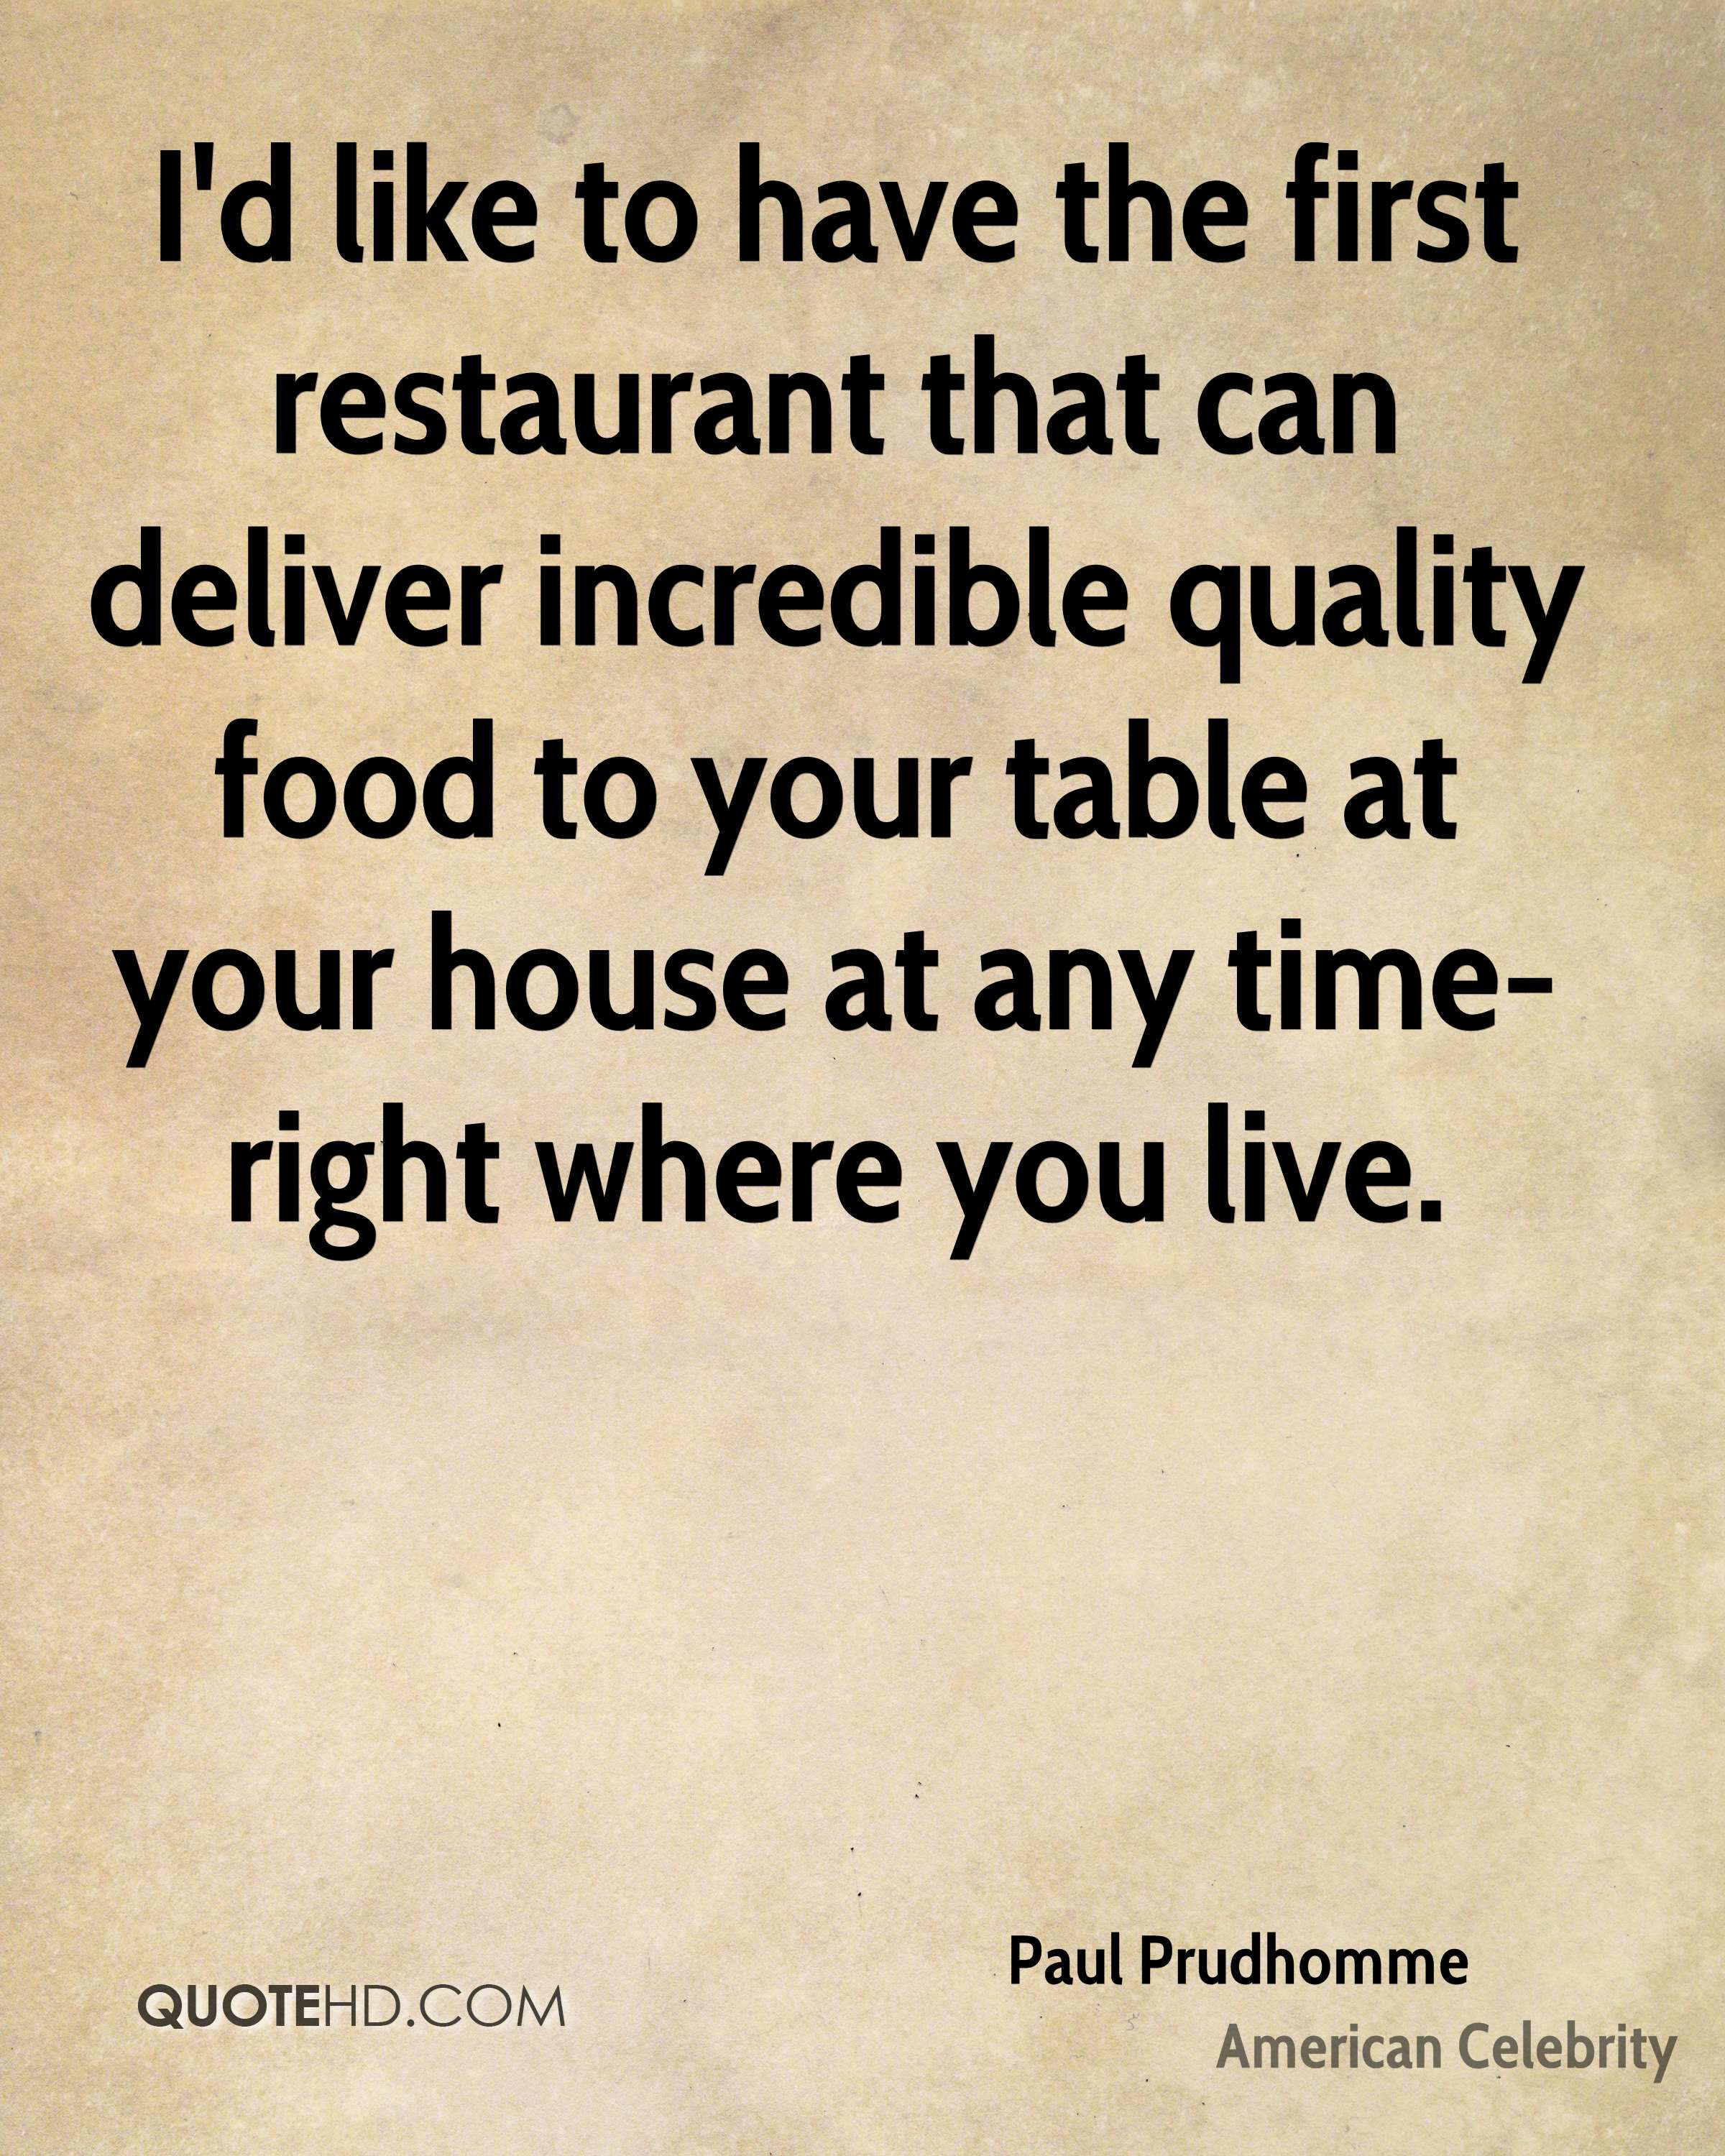 I'd like to have the first restaurant that can deliver incredible quality food to your table at your house at any time-right where you live.